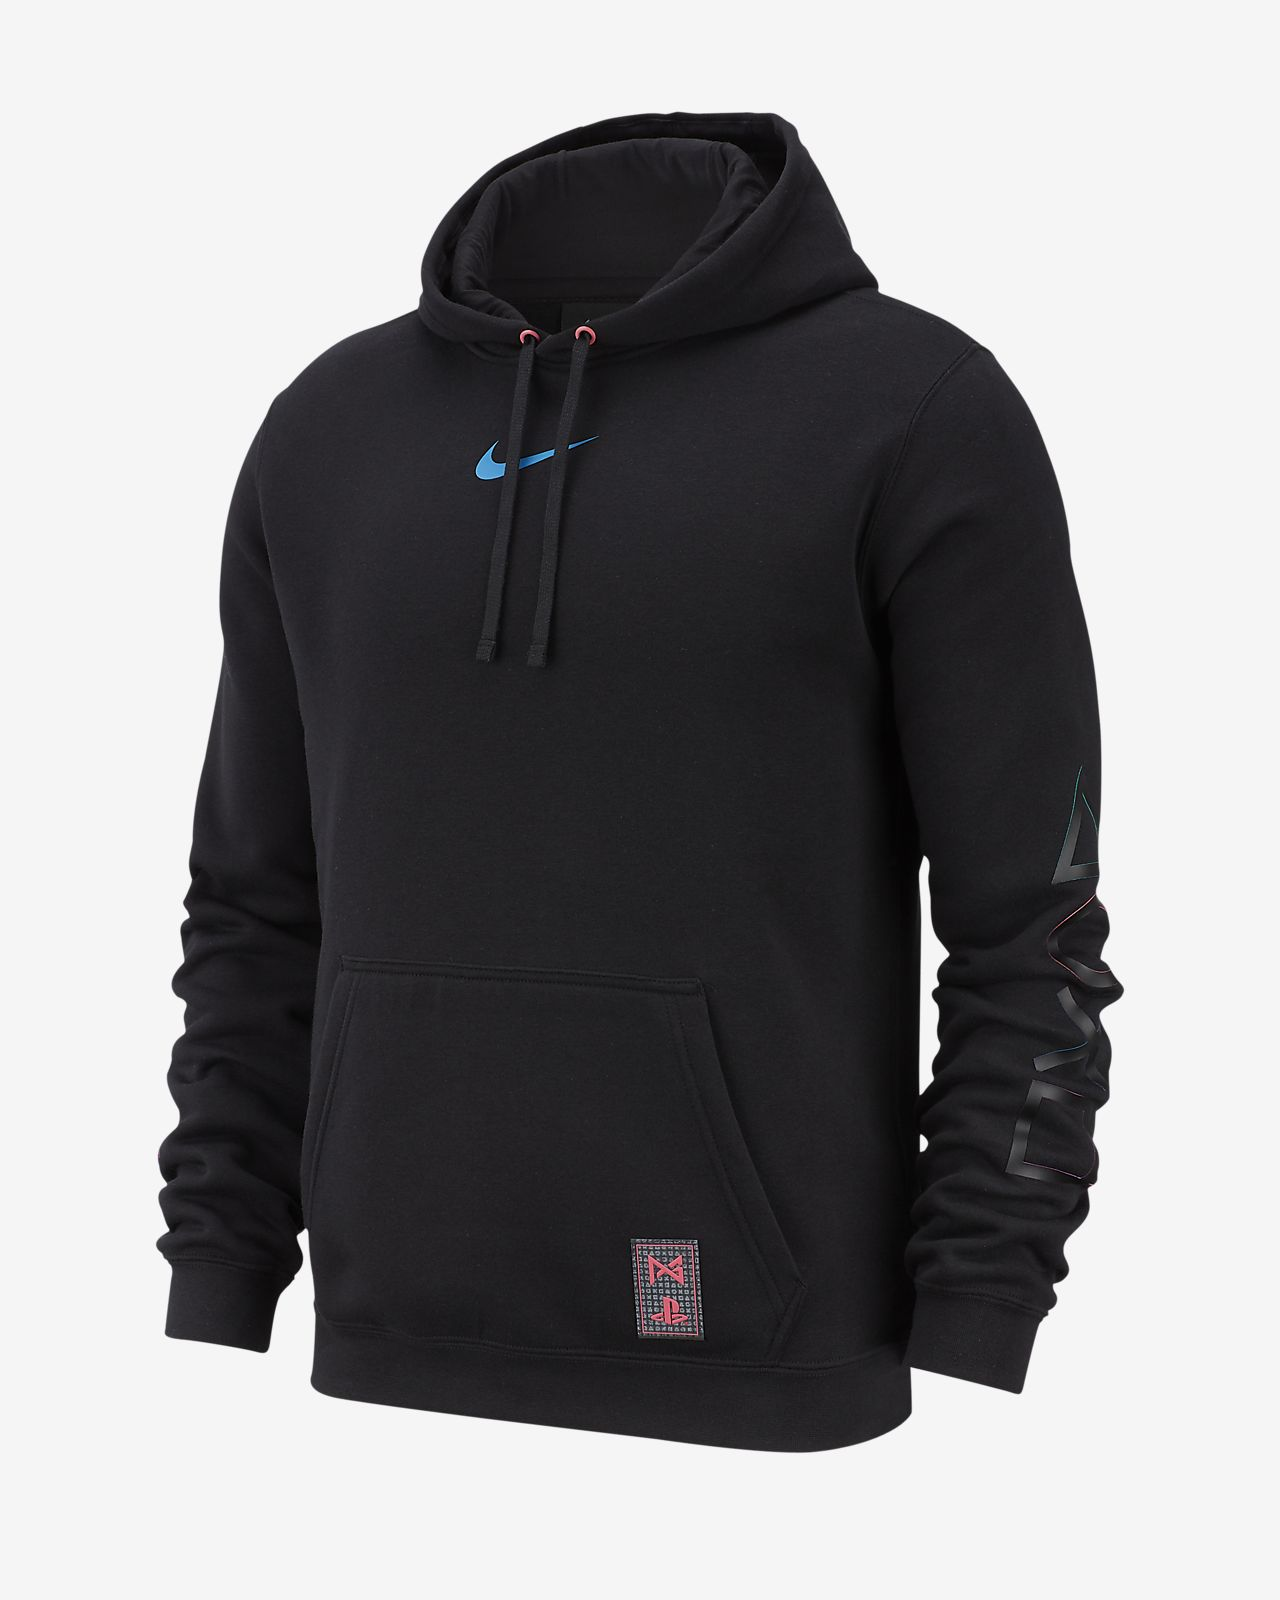 competitive price 4f843 da5b0 Nike Playstation PS x PG Hoodie Medium Paul George Nebula Black PS4  BV7798-010